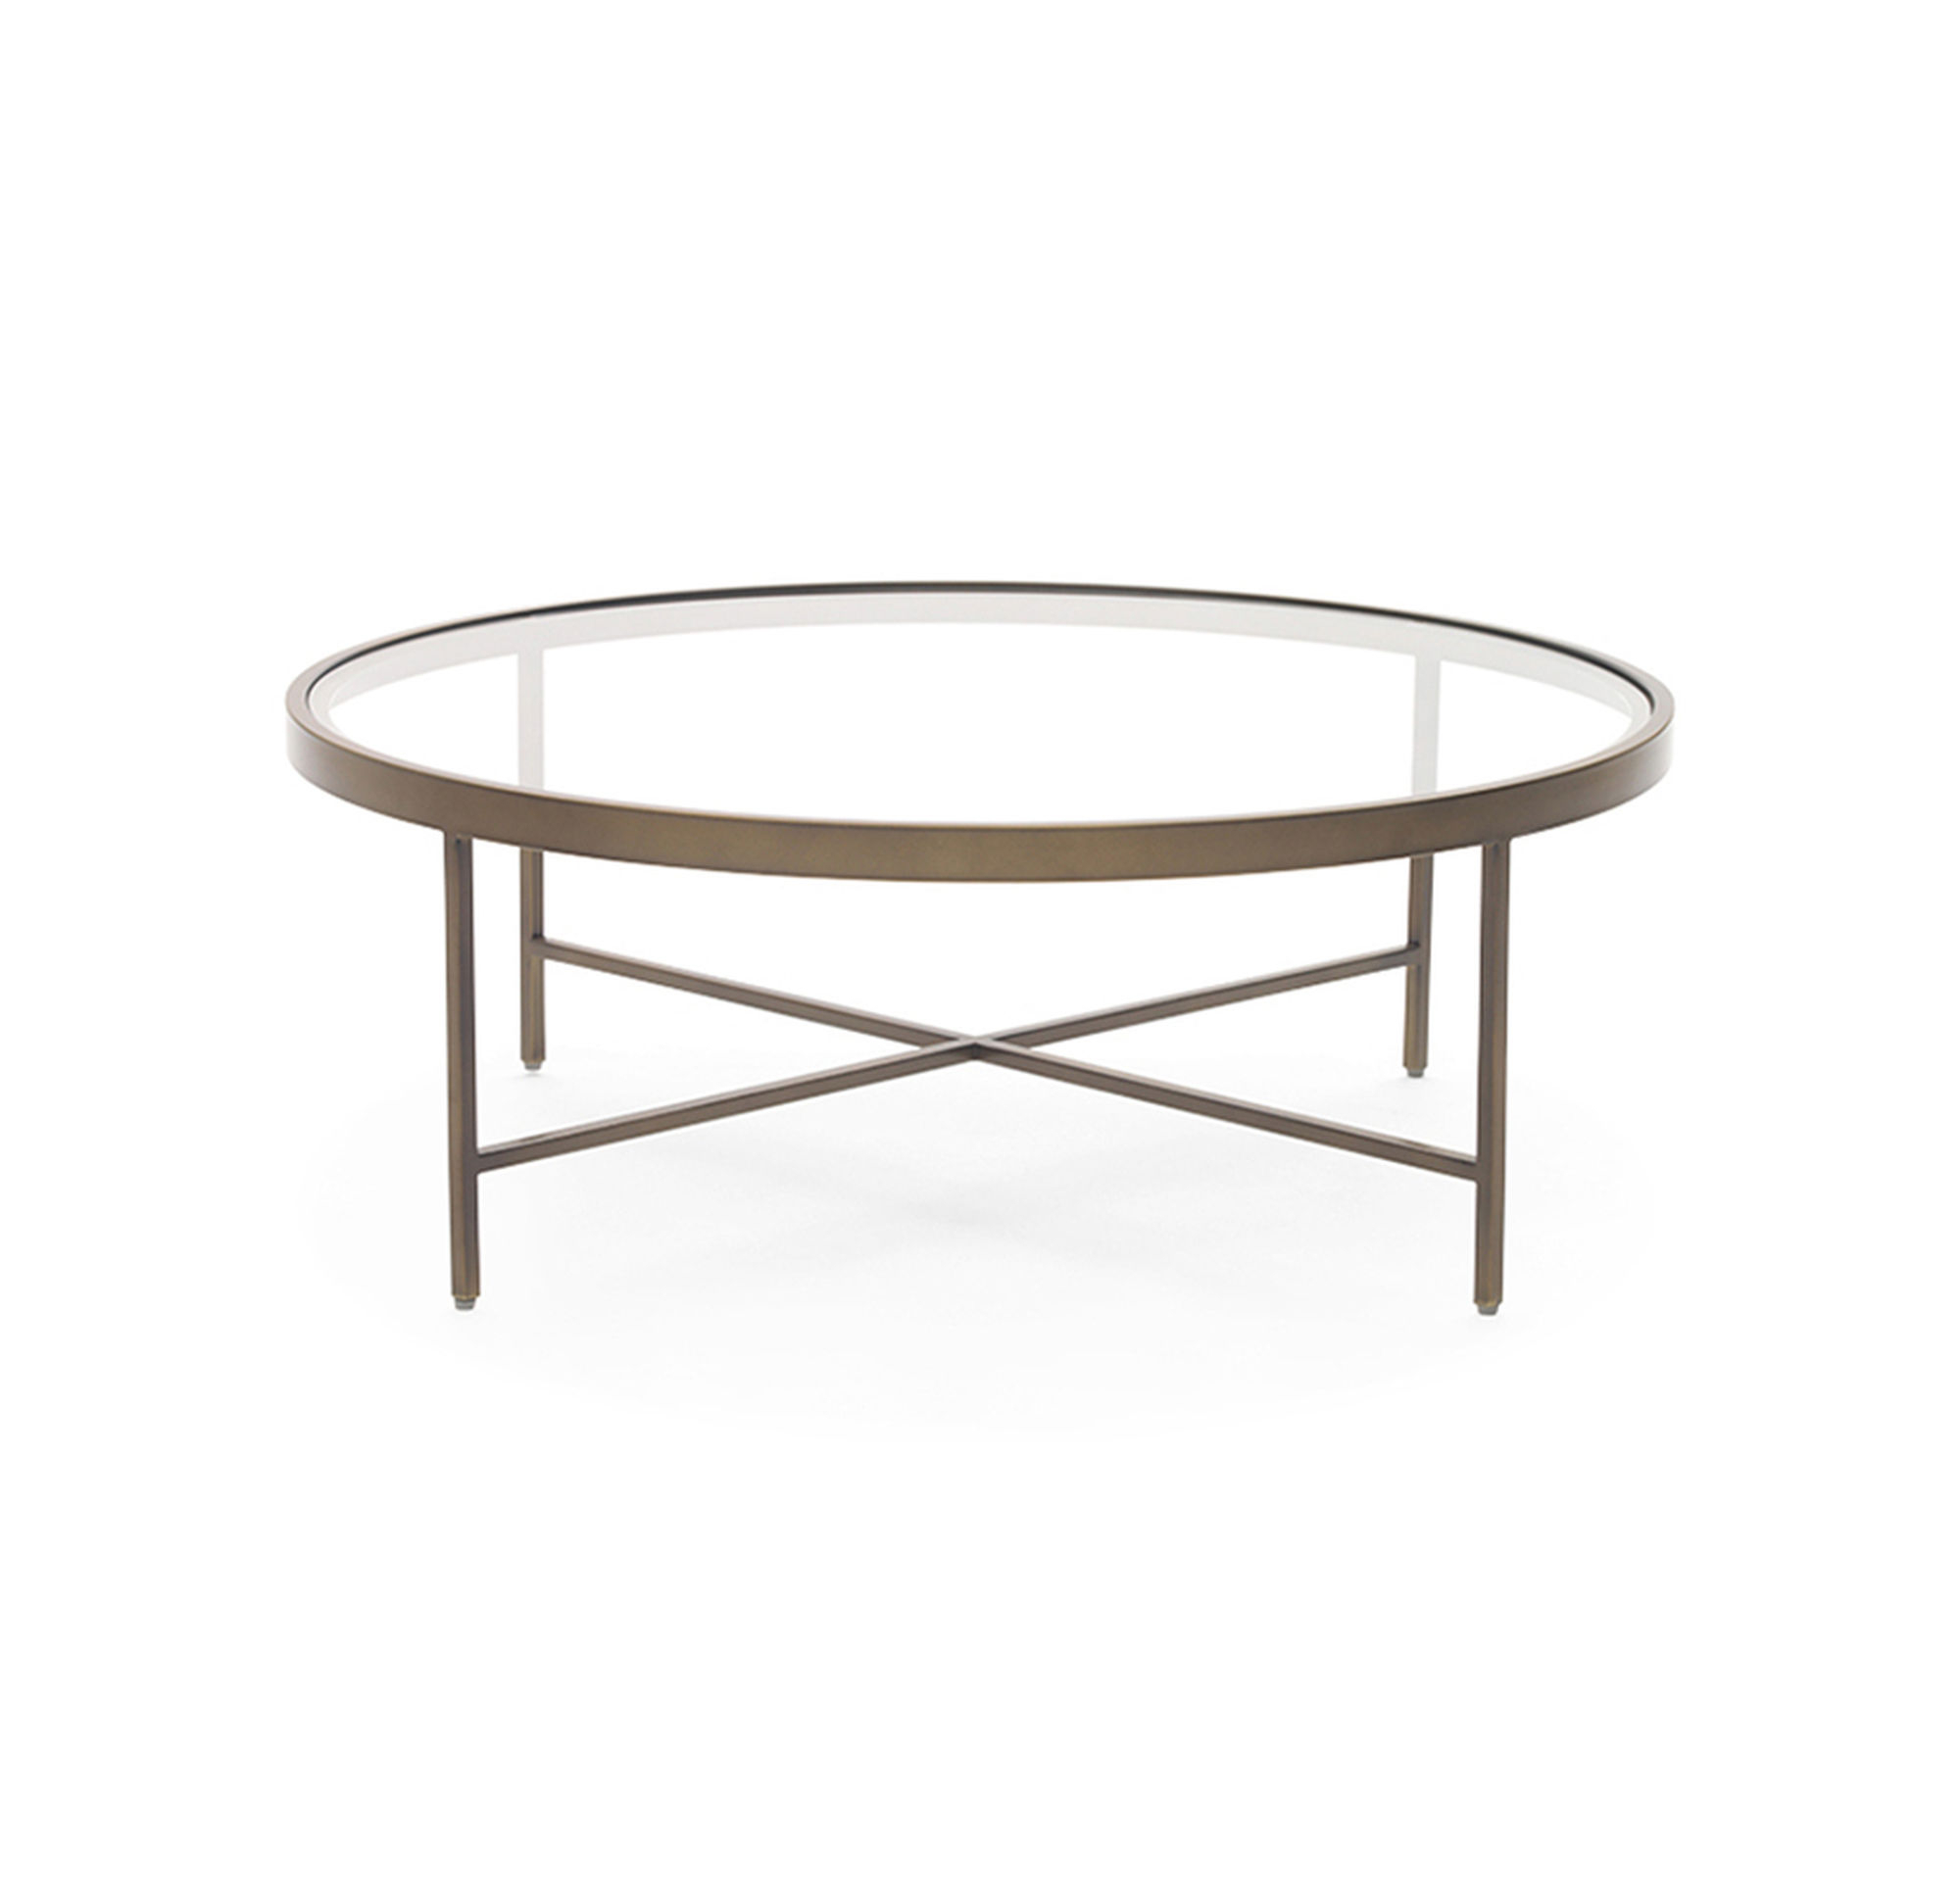 2019 Vienna Antique Brass Round Cocktail Table Ctb End Stainless Steel For Antique Brass Coffee Tables (View 20 of 20)